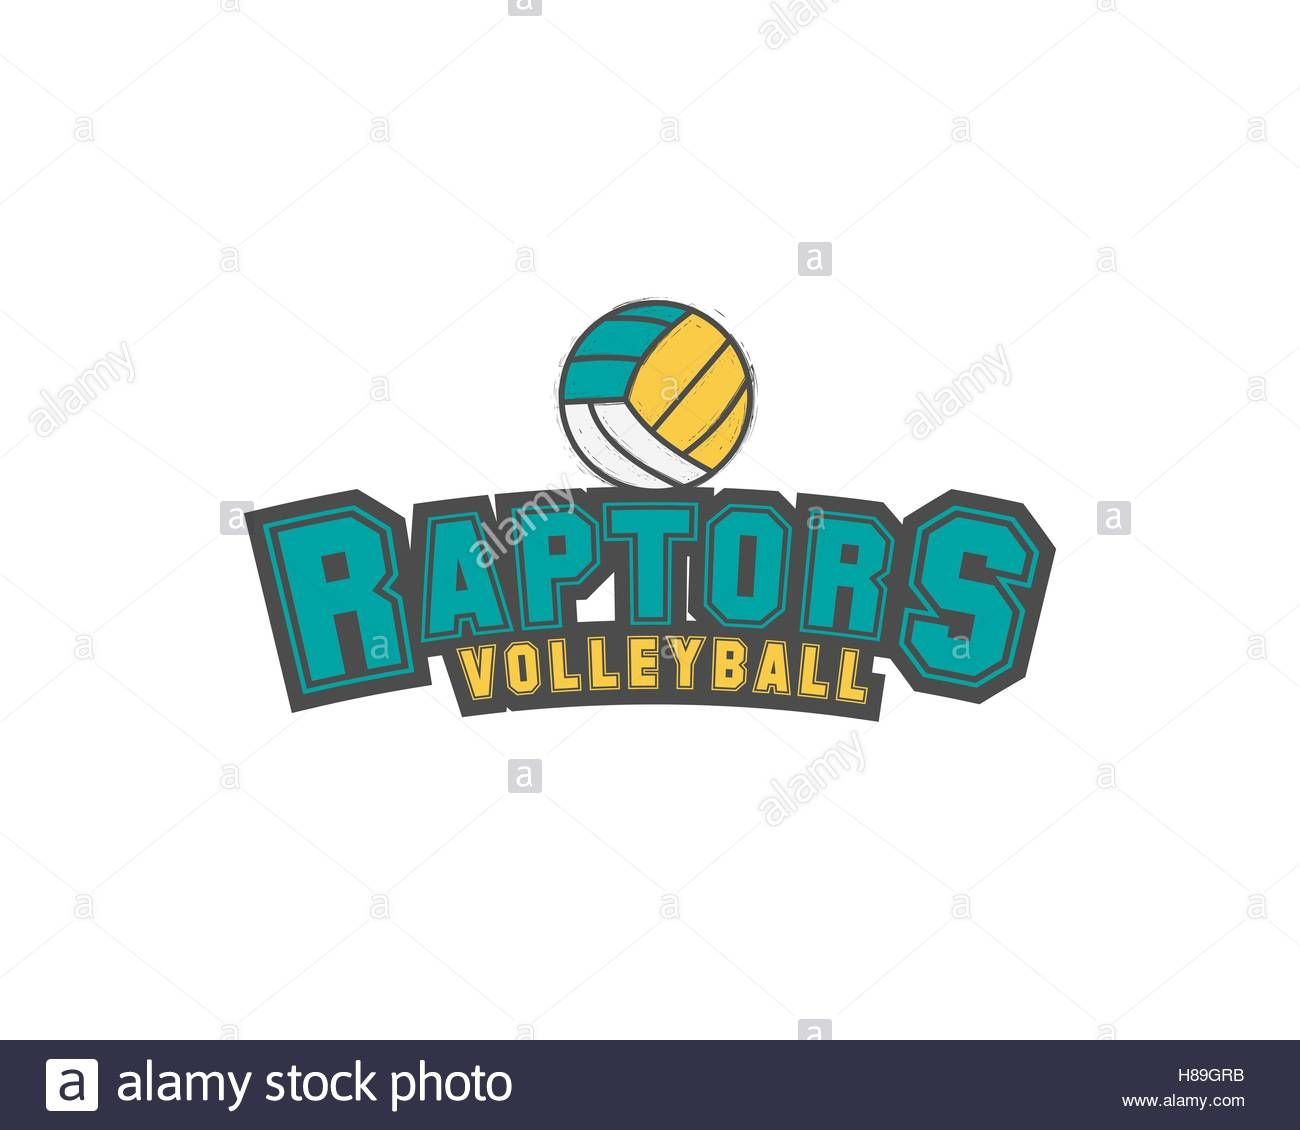 Download This Stock Vector Volleyball Club Emblem College League Logo Raptors Design Template Eleme Volleyball Clubs Volleyball Tournaments Design Template